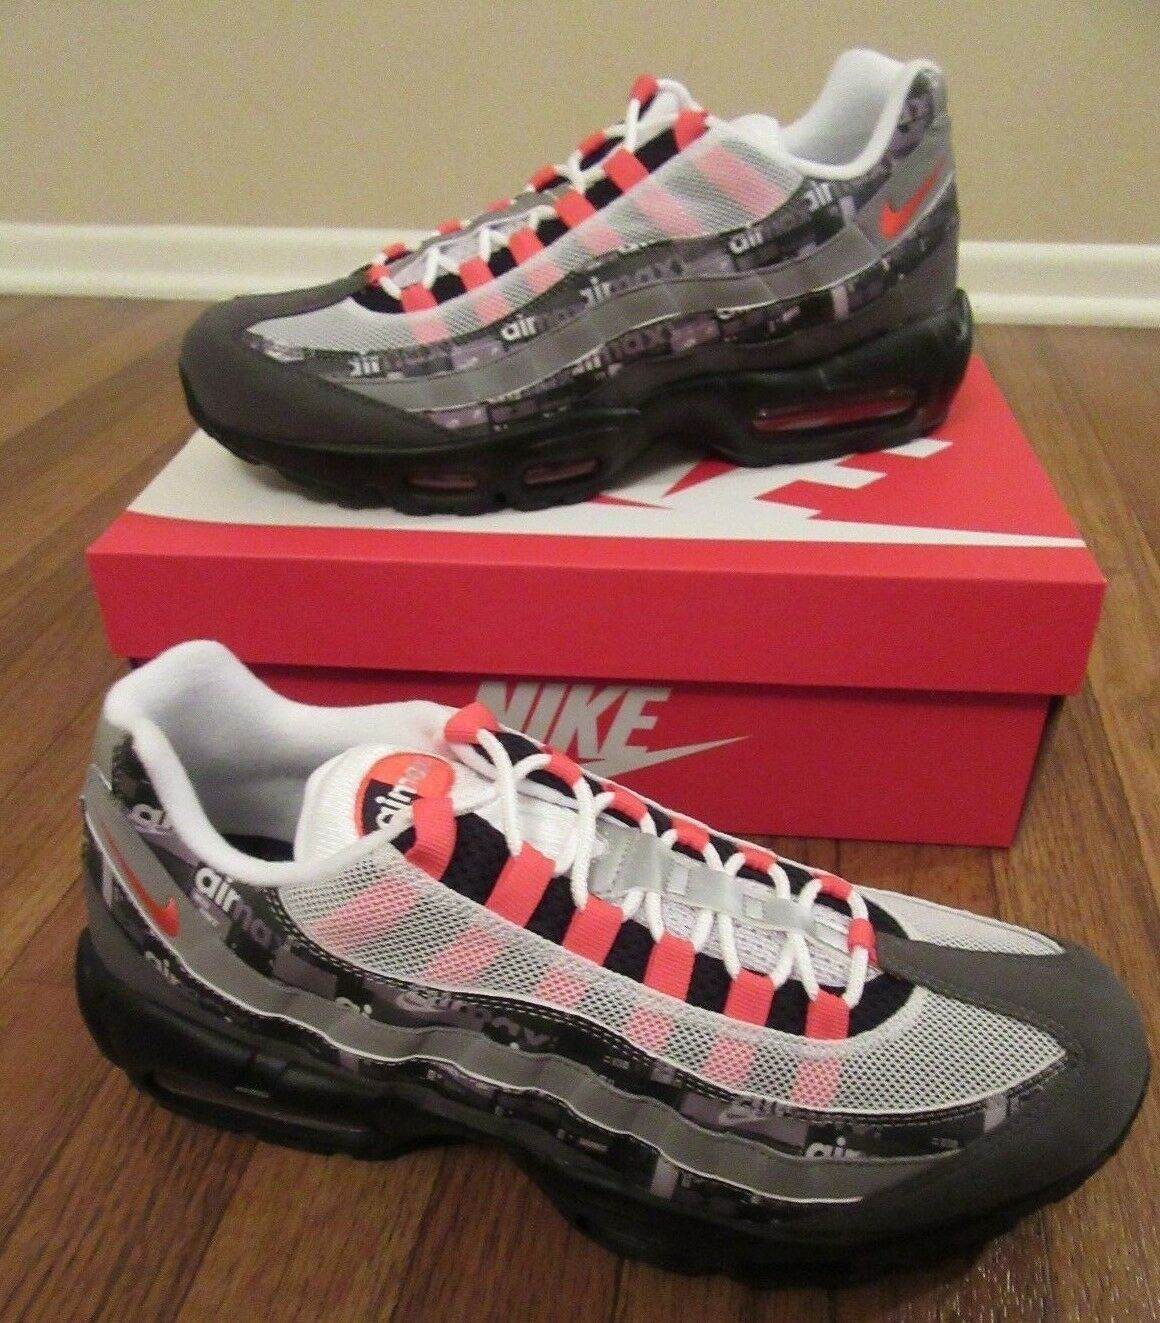 Nike Air Max 95 Print Size 11.5 Black Bright Crimson AQ0925 002 We Love Nike NIB